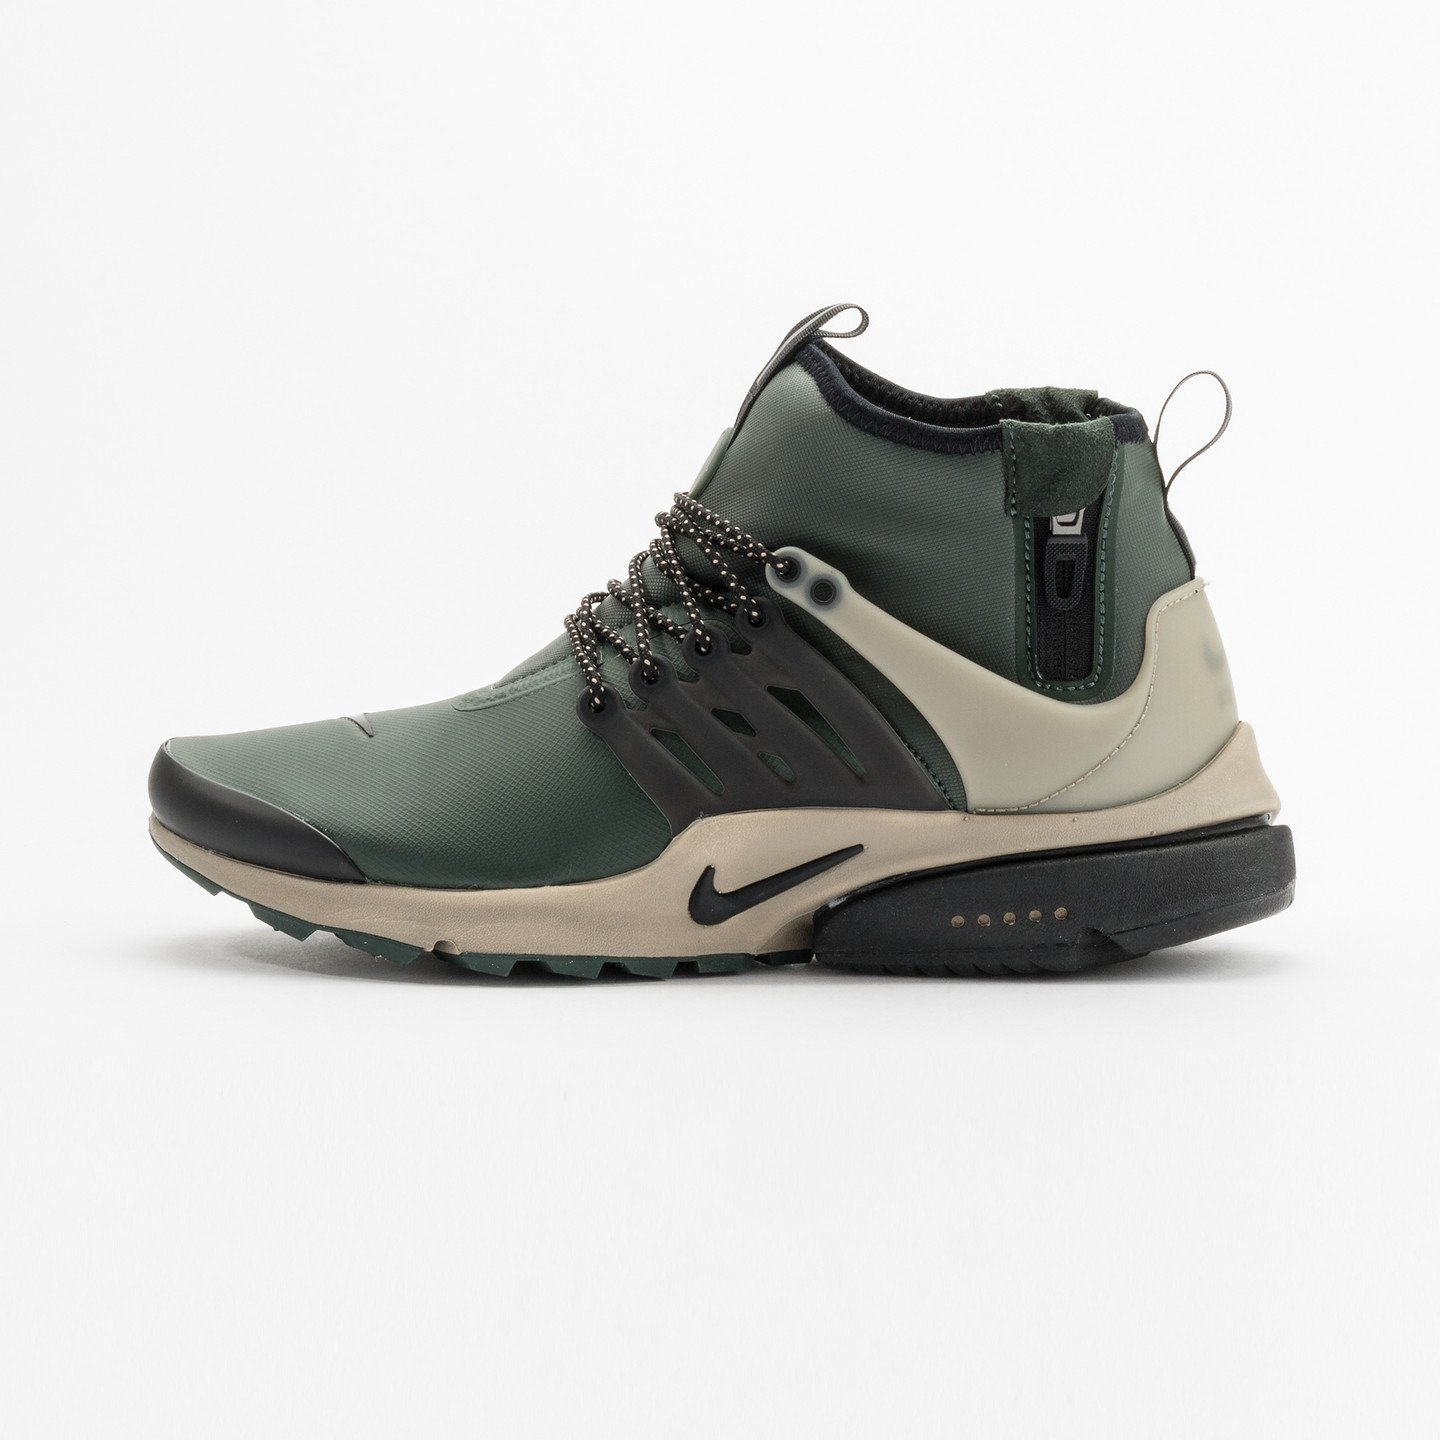 Nike Air Presto Mid Top Utility Grove Green / Black - Khaki 859524-300-42.5